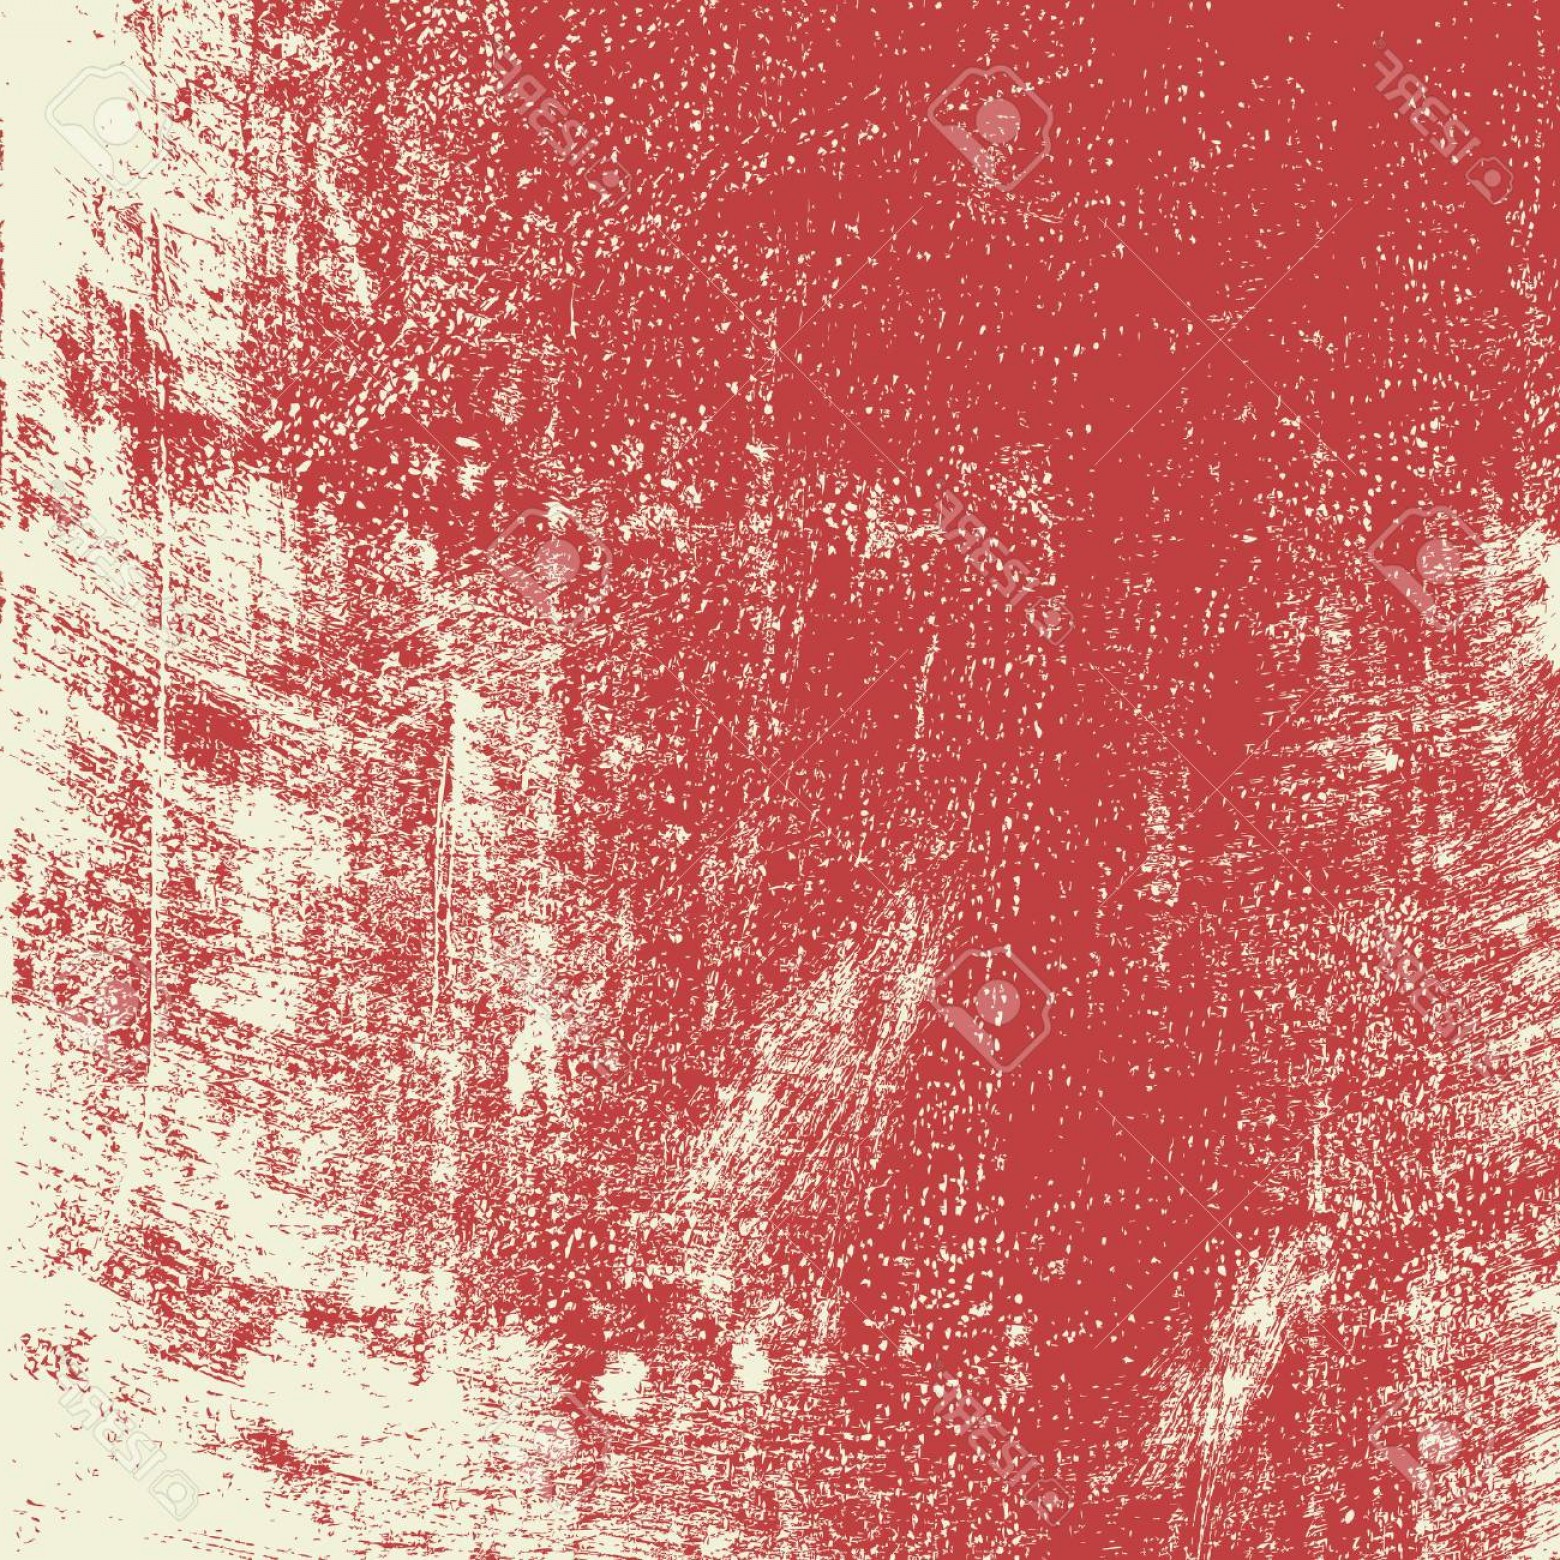 Distressed Red Background Vector: Photostock Vector Distressed Red Color Background For Your Design